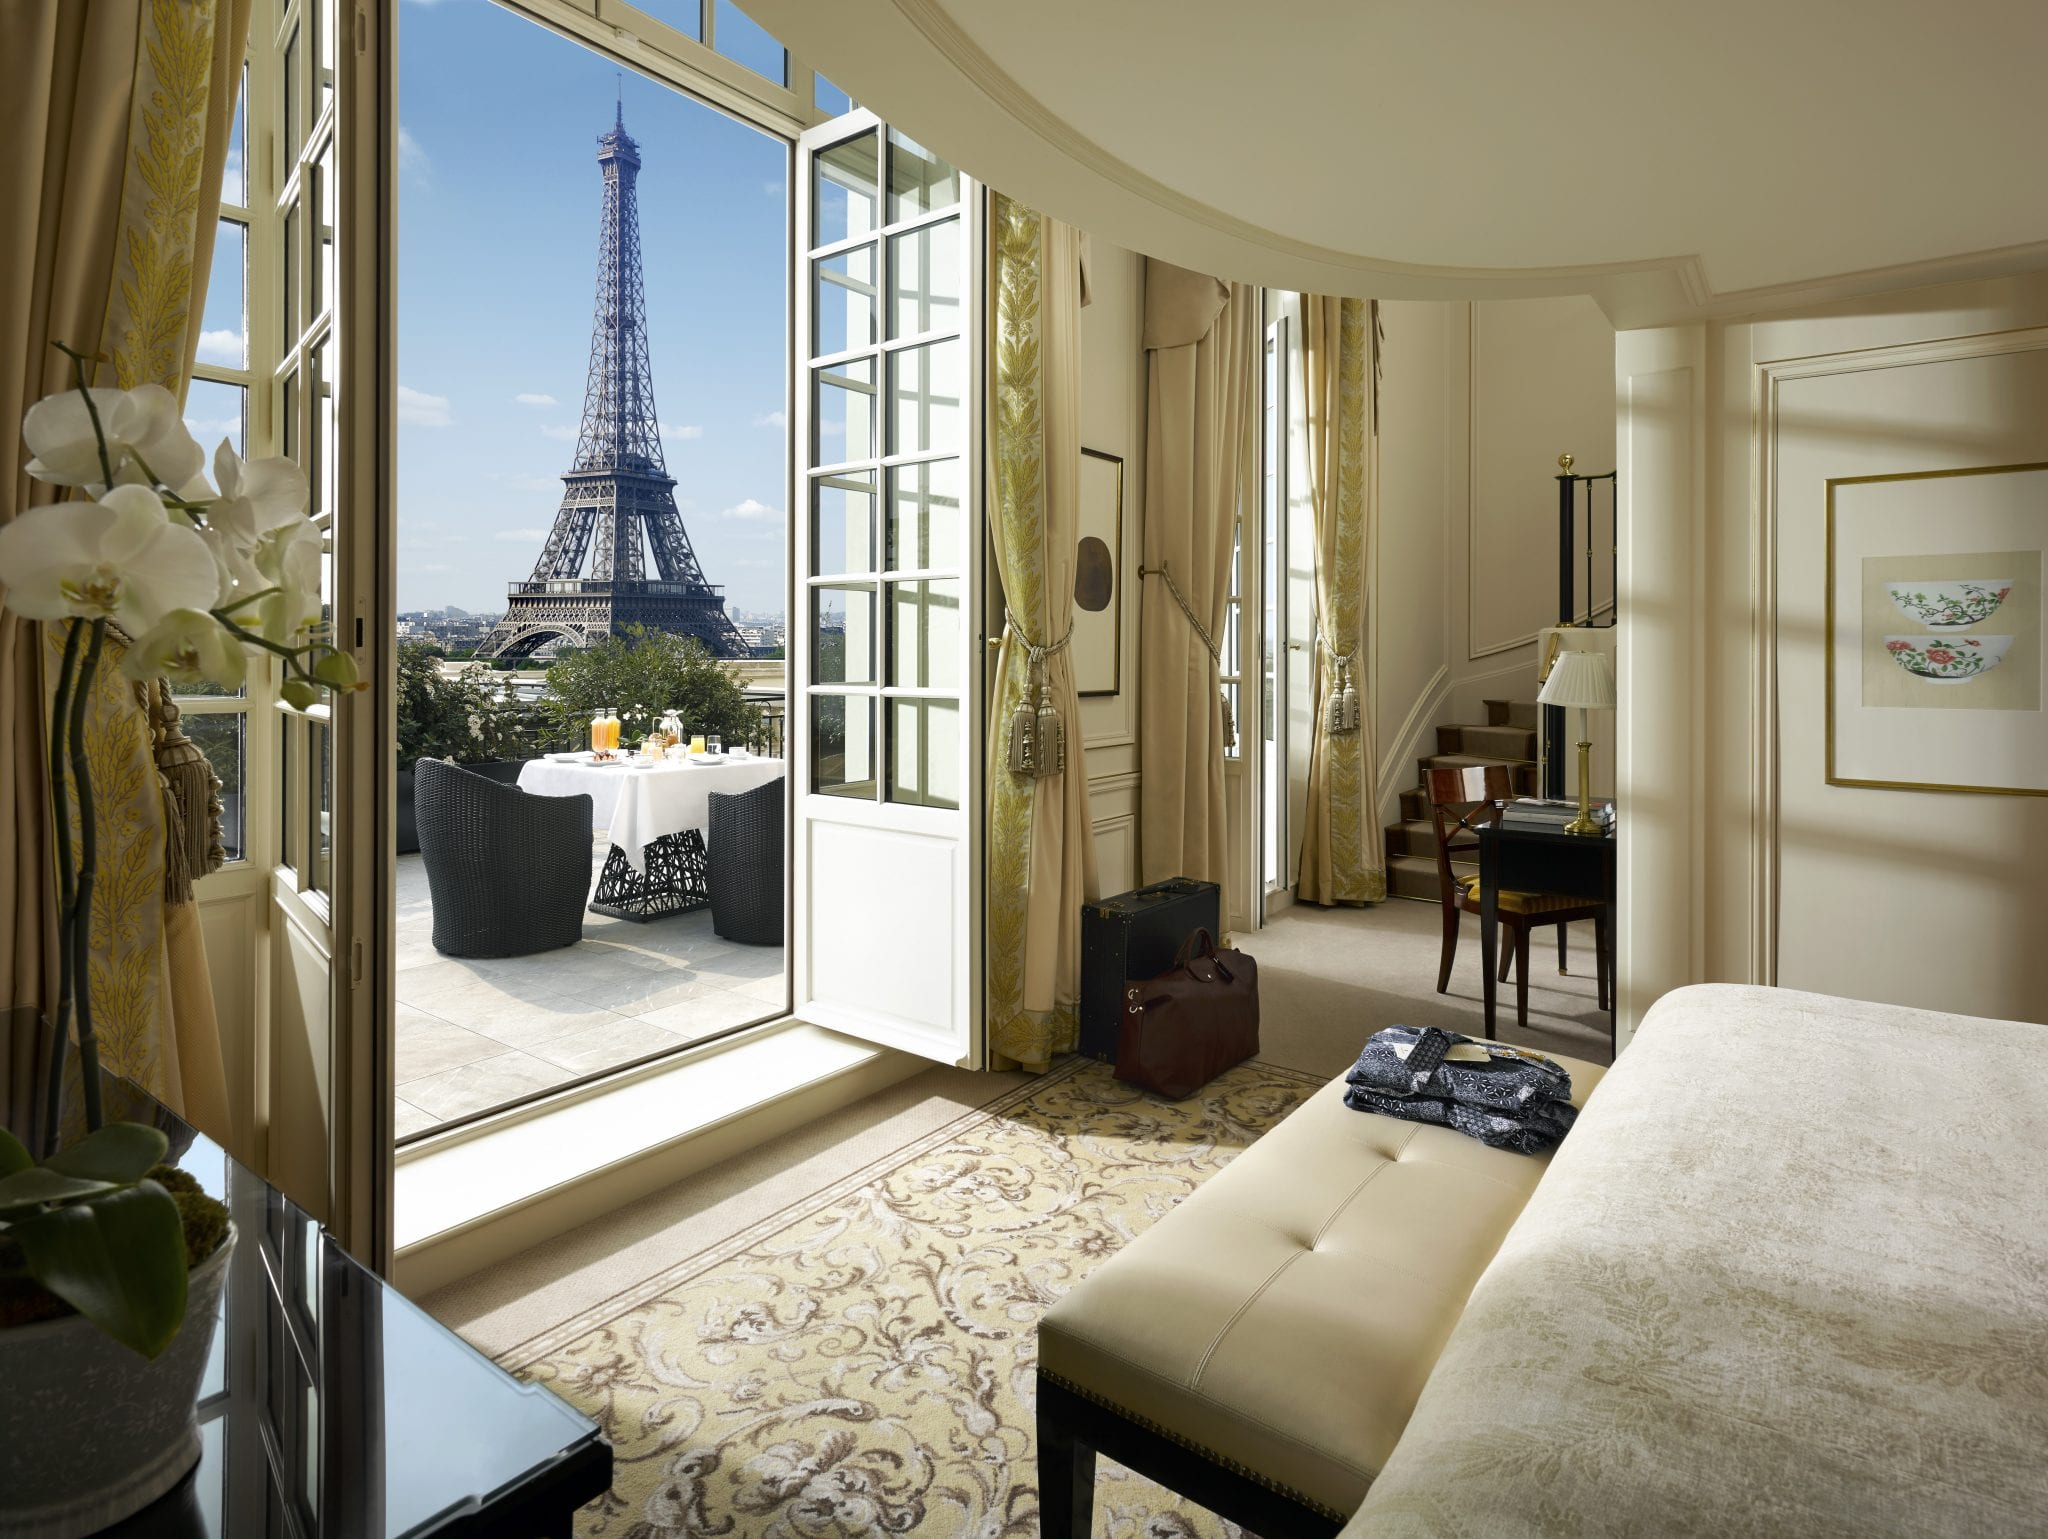 Most Instagrammable Hotels in Paris